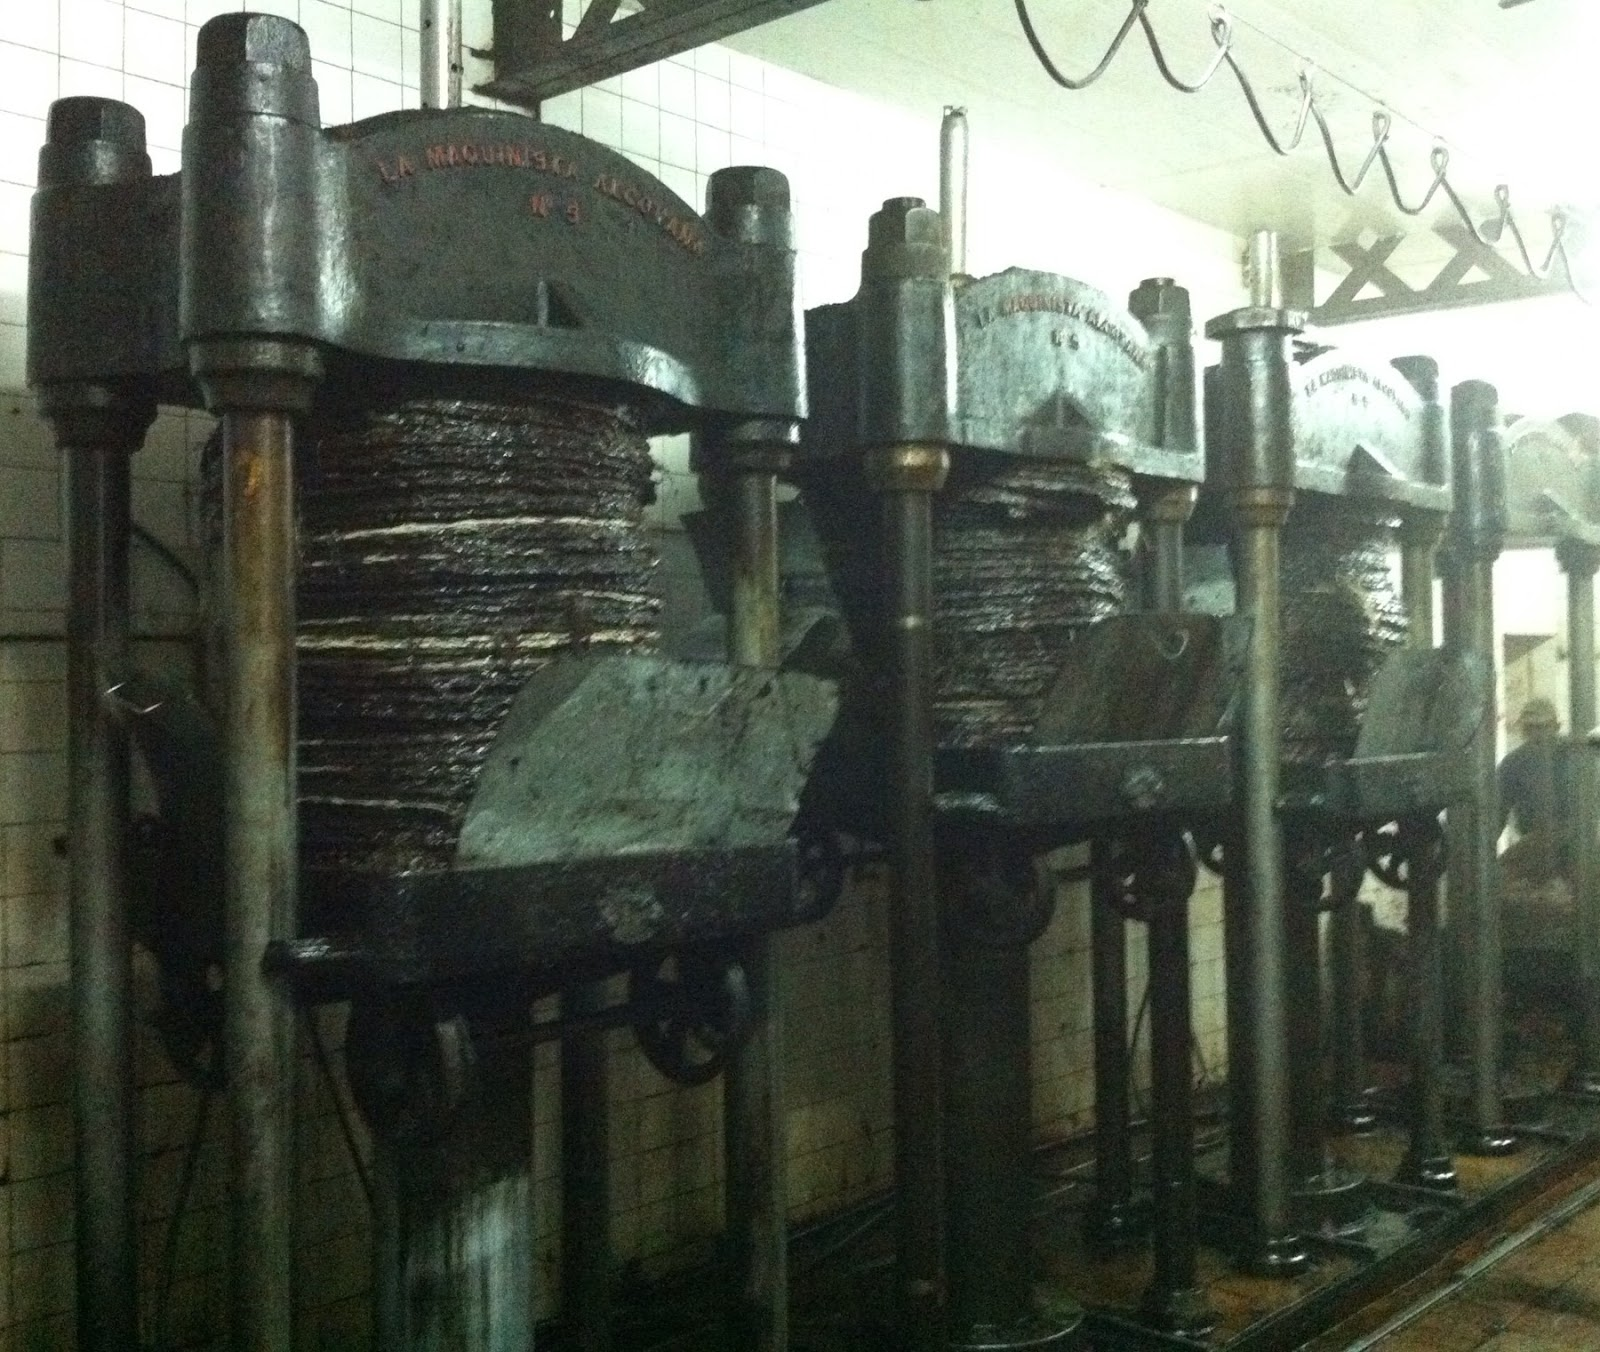 Candela´s presses working